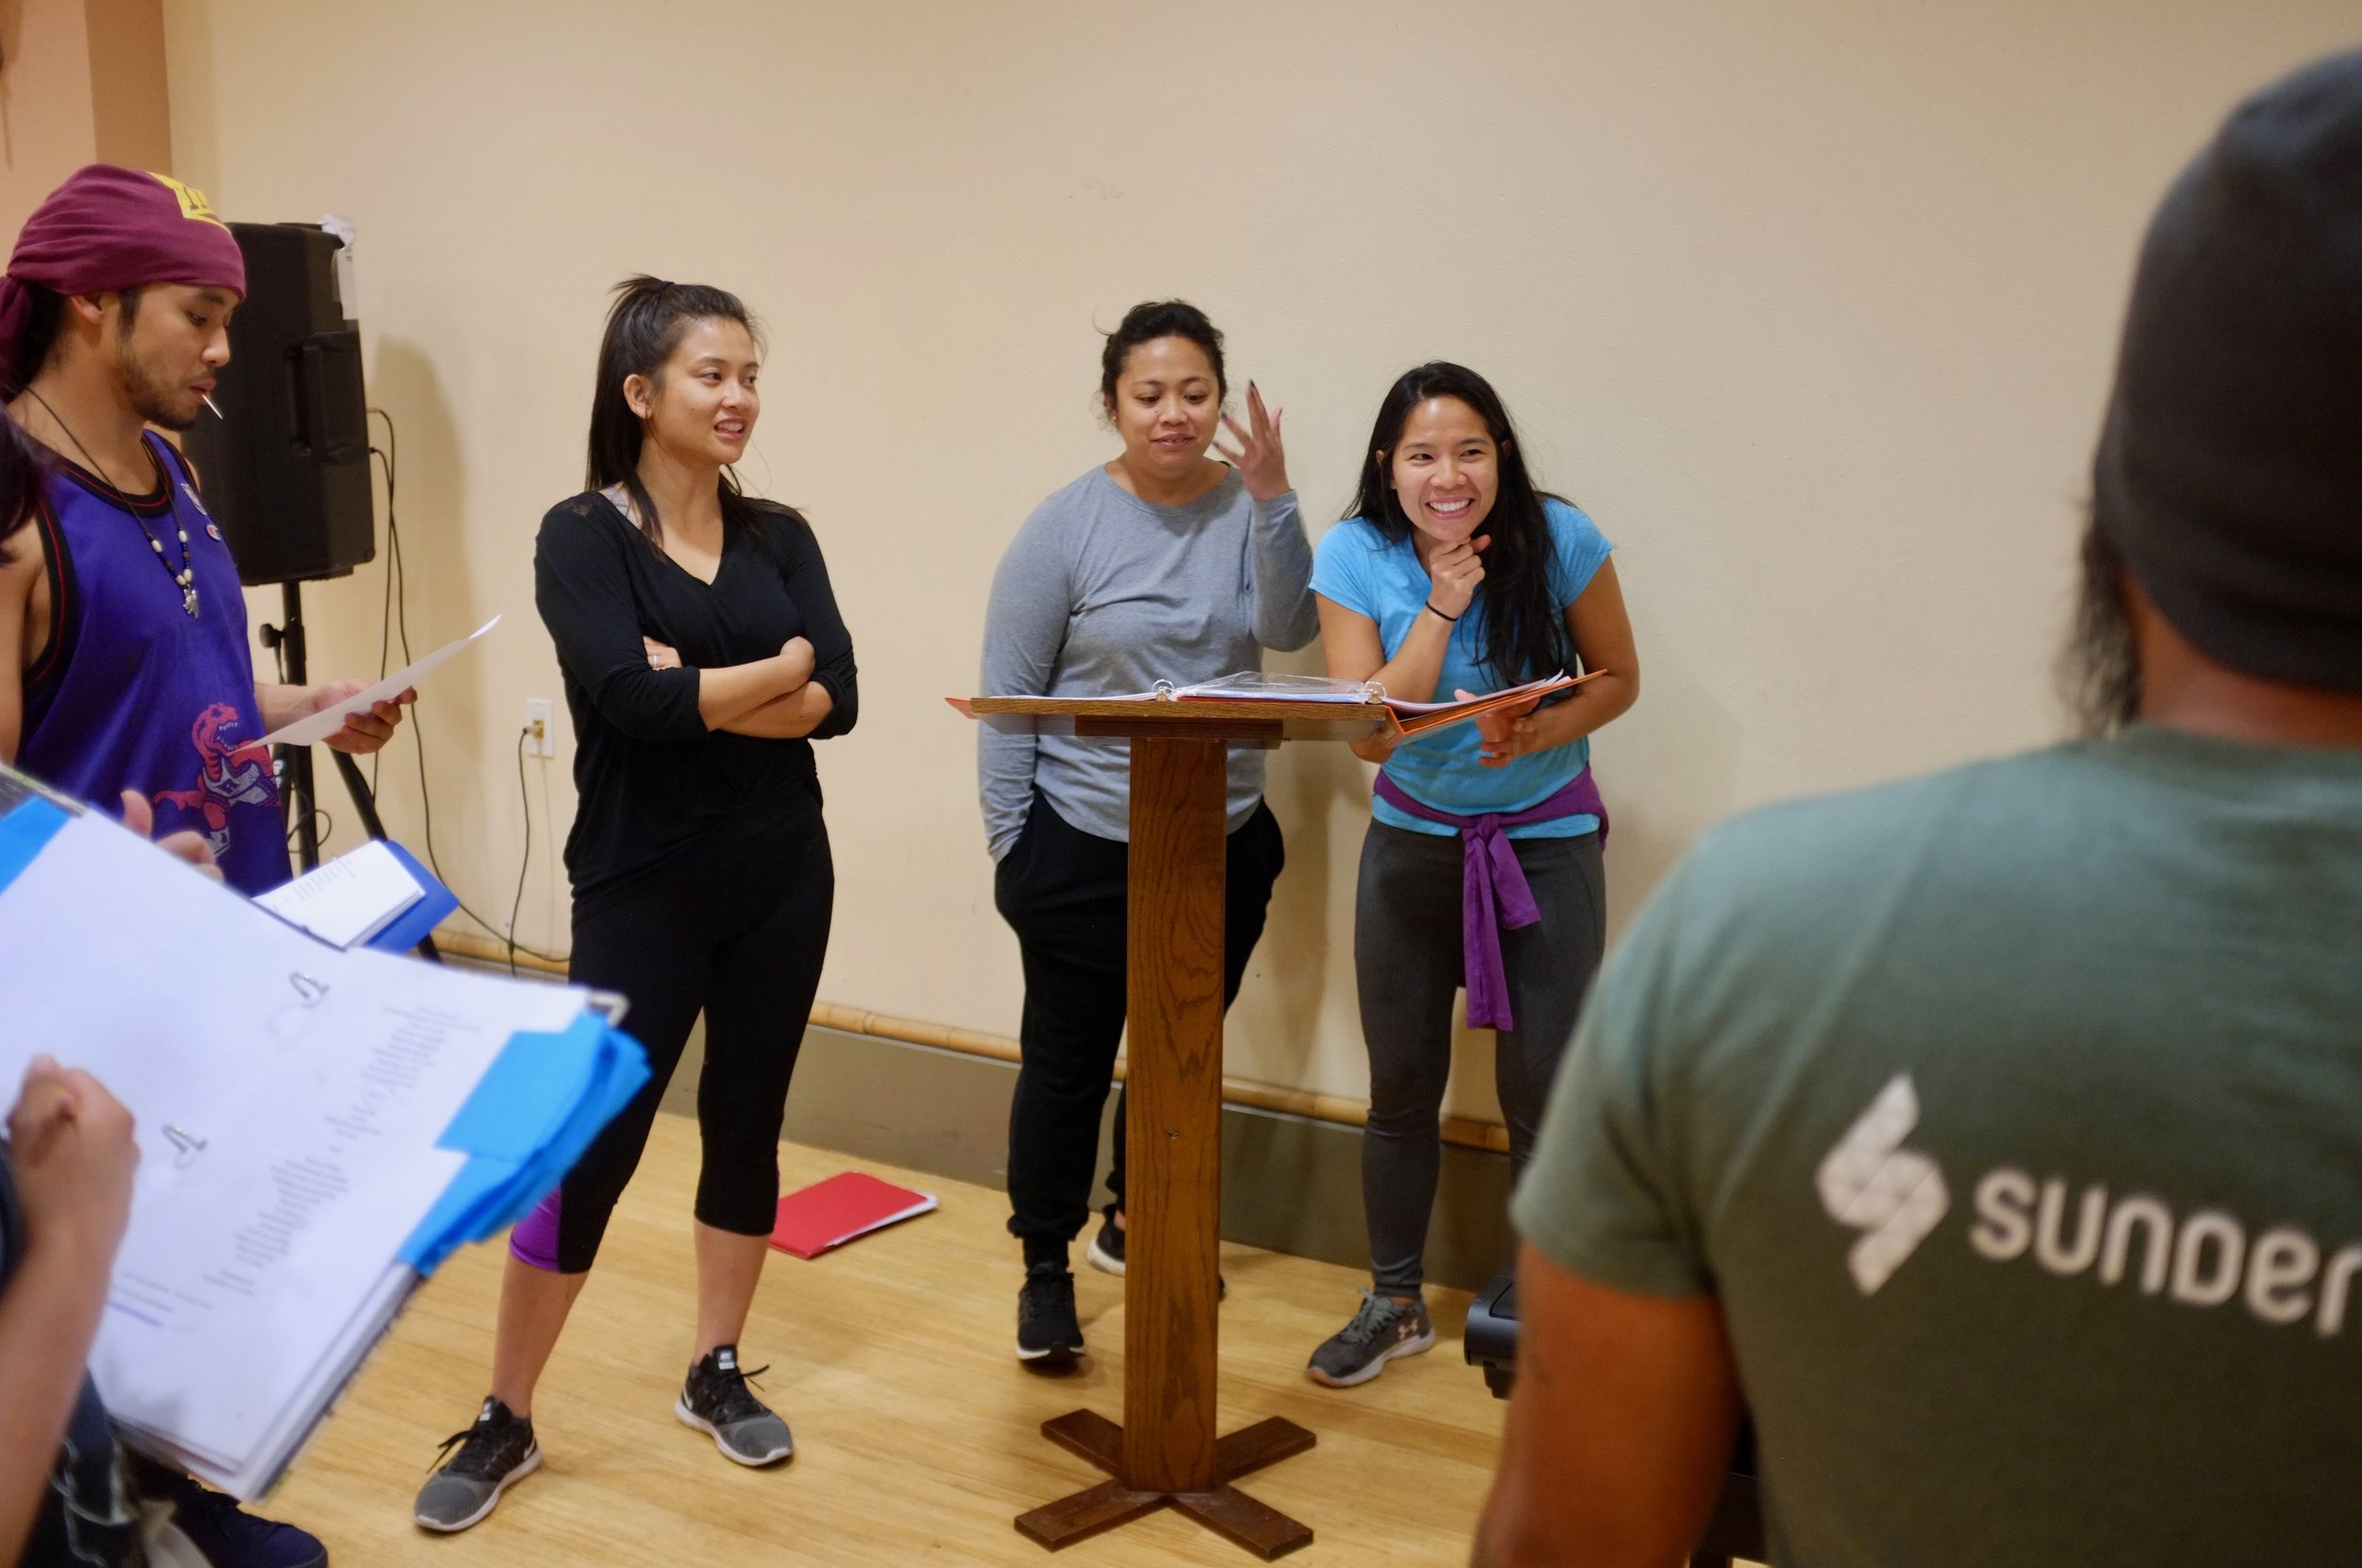 Left to Right: Johnny Nguyen, Felicial Victoria Jacobe, Lindsay Ordesta, and Andrea Almario in Chasing Papeles Rehearsal